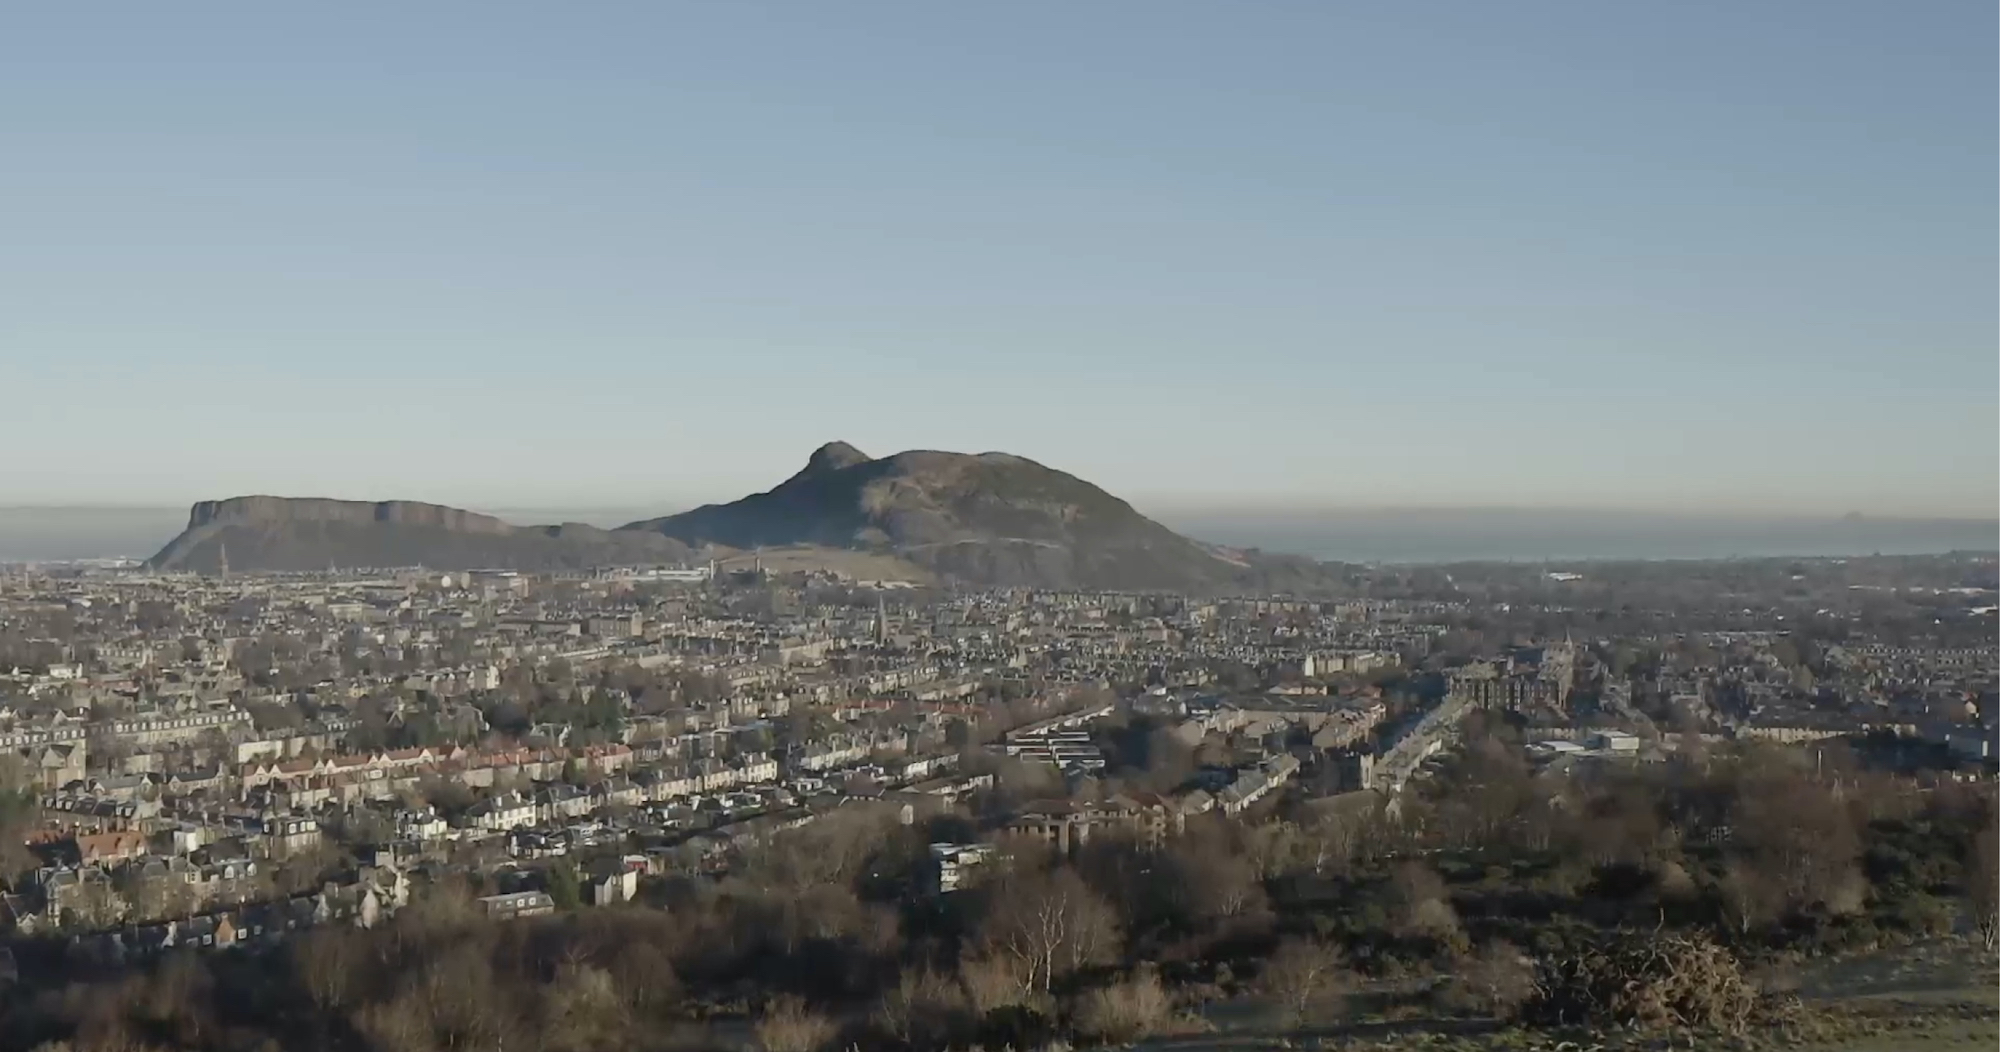 A view of Edinburgh, Scotland, with the Salisbury Crags in the background on a sunny day